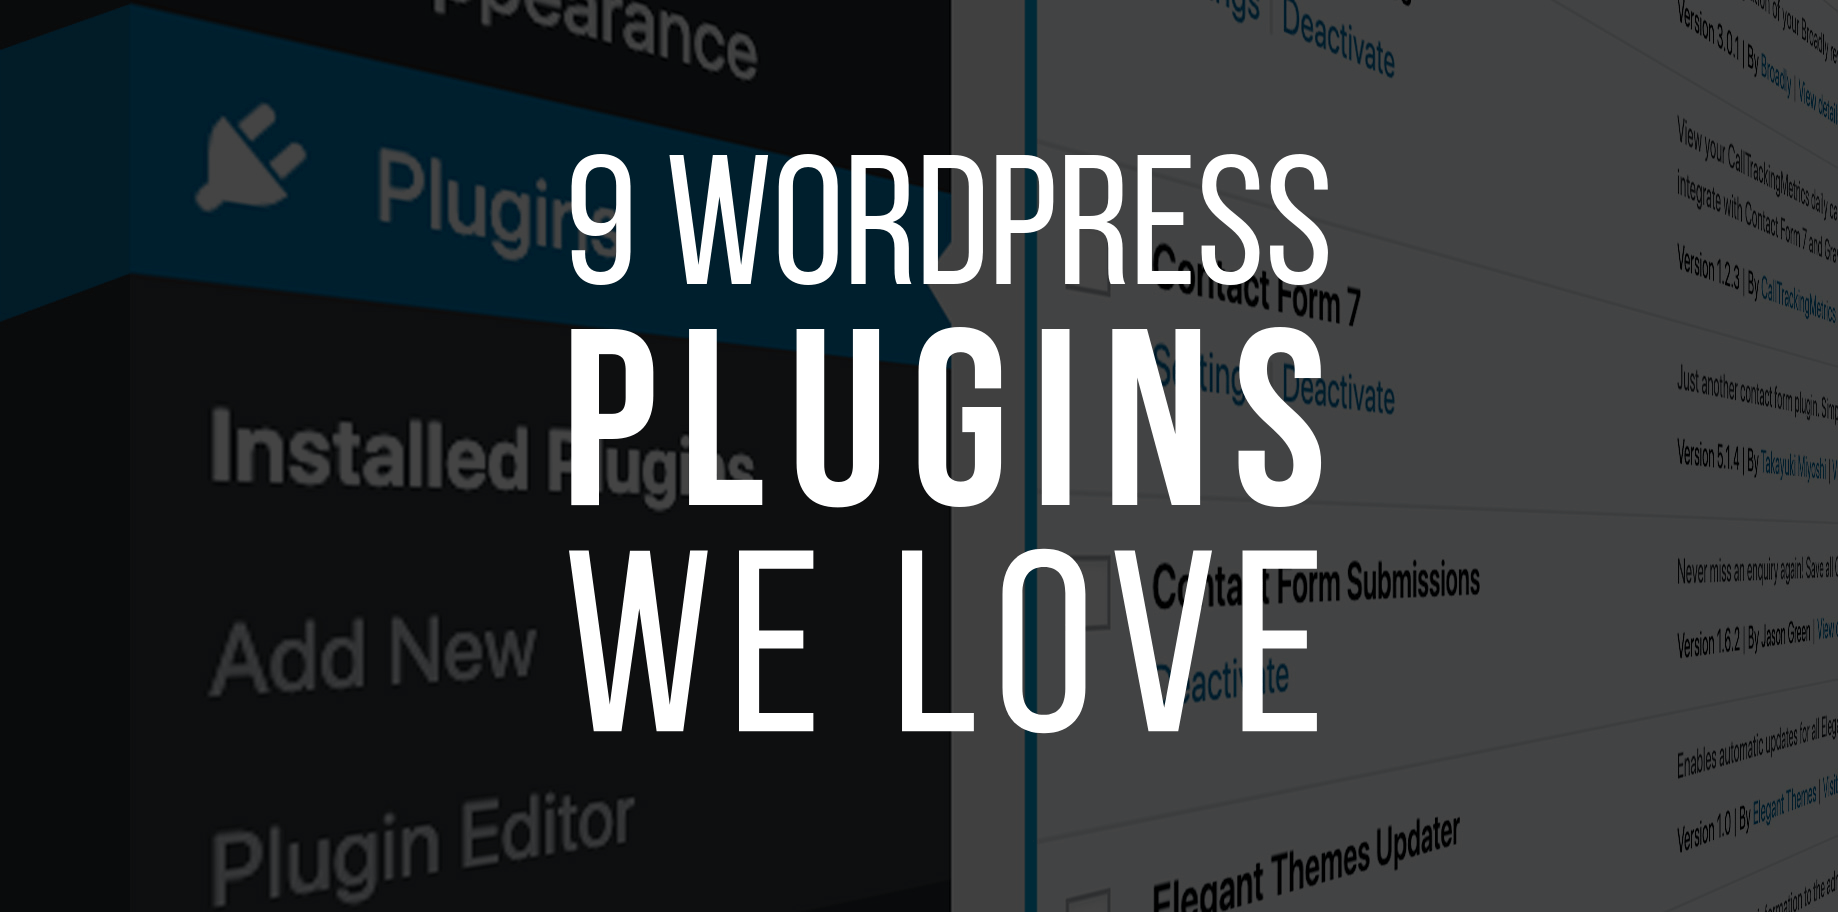 how to add a new home page in wordpress